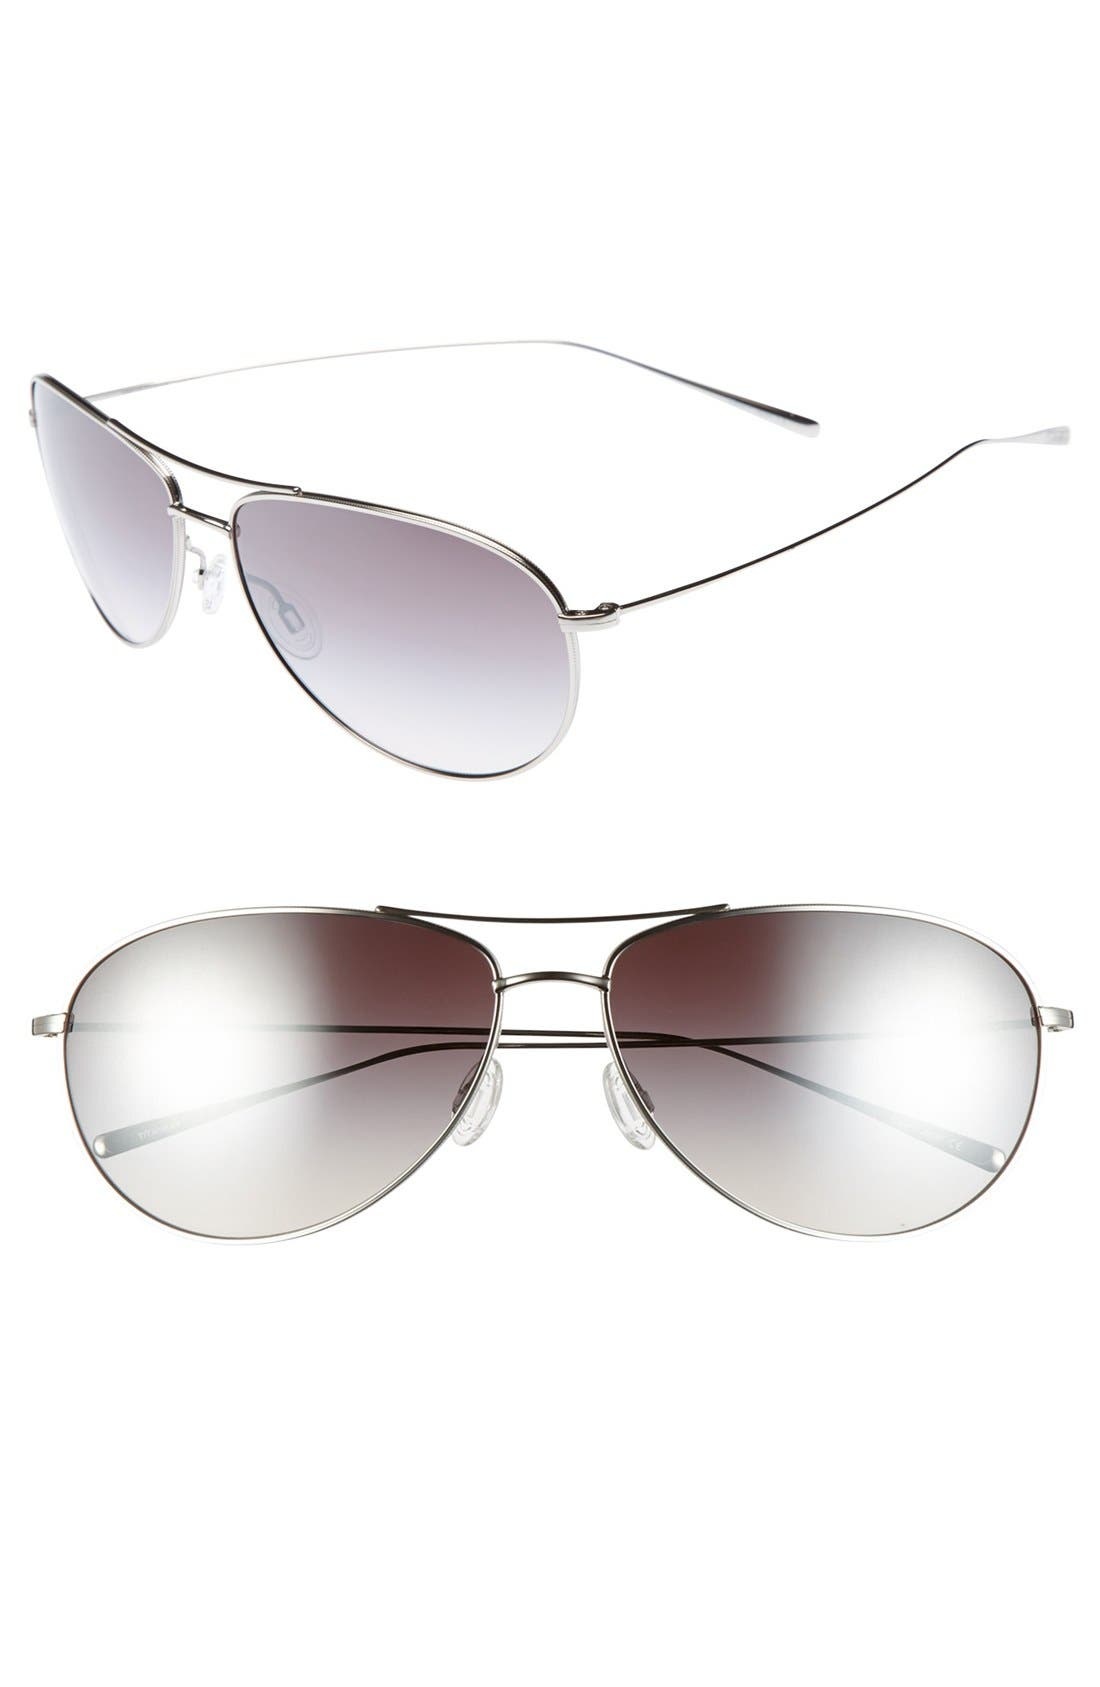 Alternate Image 1 Selected - Oliver Peoples 'Tavern' 61mm Aviator Sunglasses